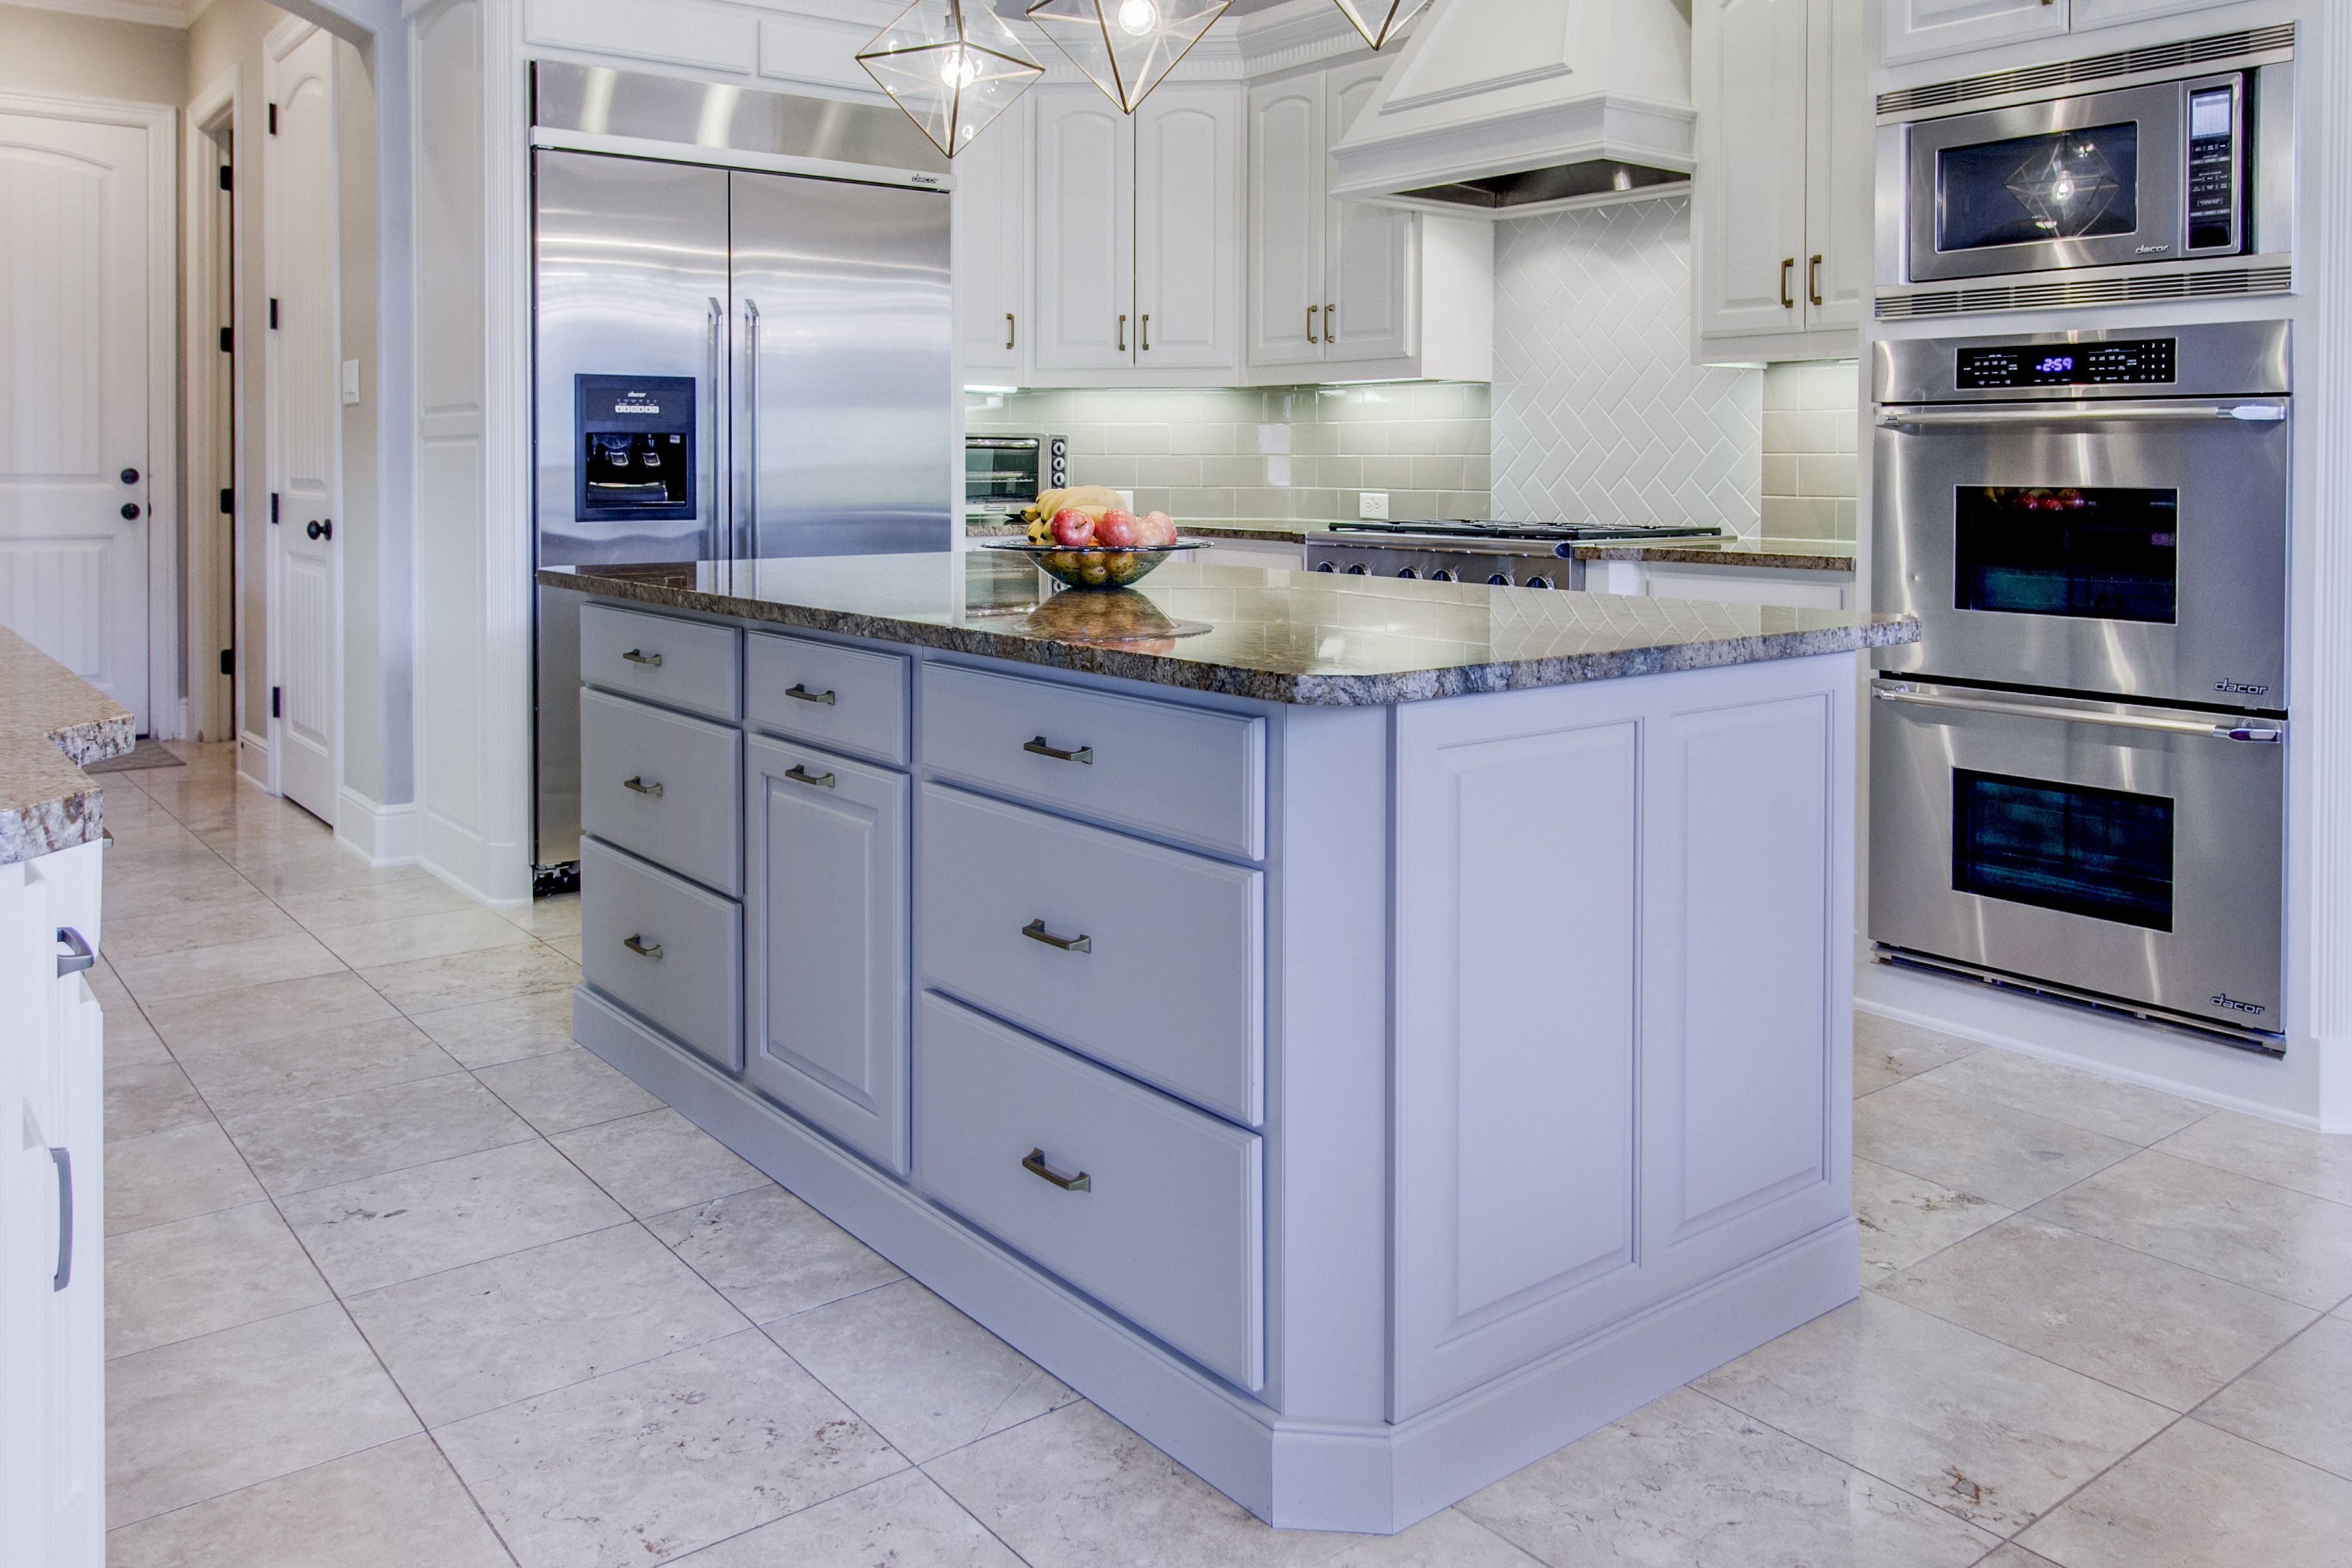 The Client Wanted To Brighten Up The Space Without Changing Their Granite  Countertops. The Contrast Between The Light Cabinets And Gold Toned Granite  Was ...